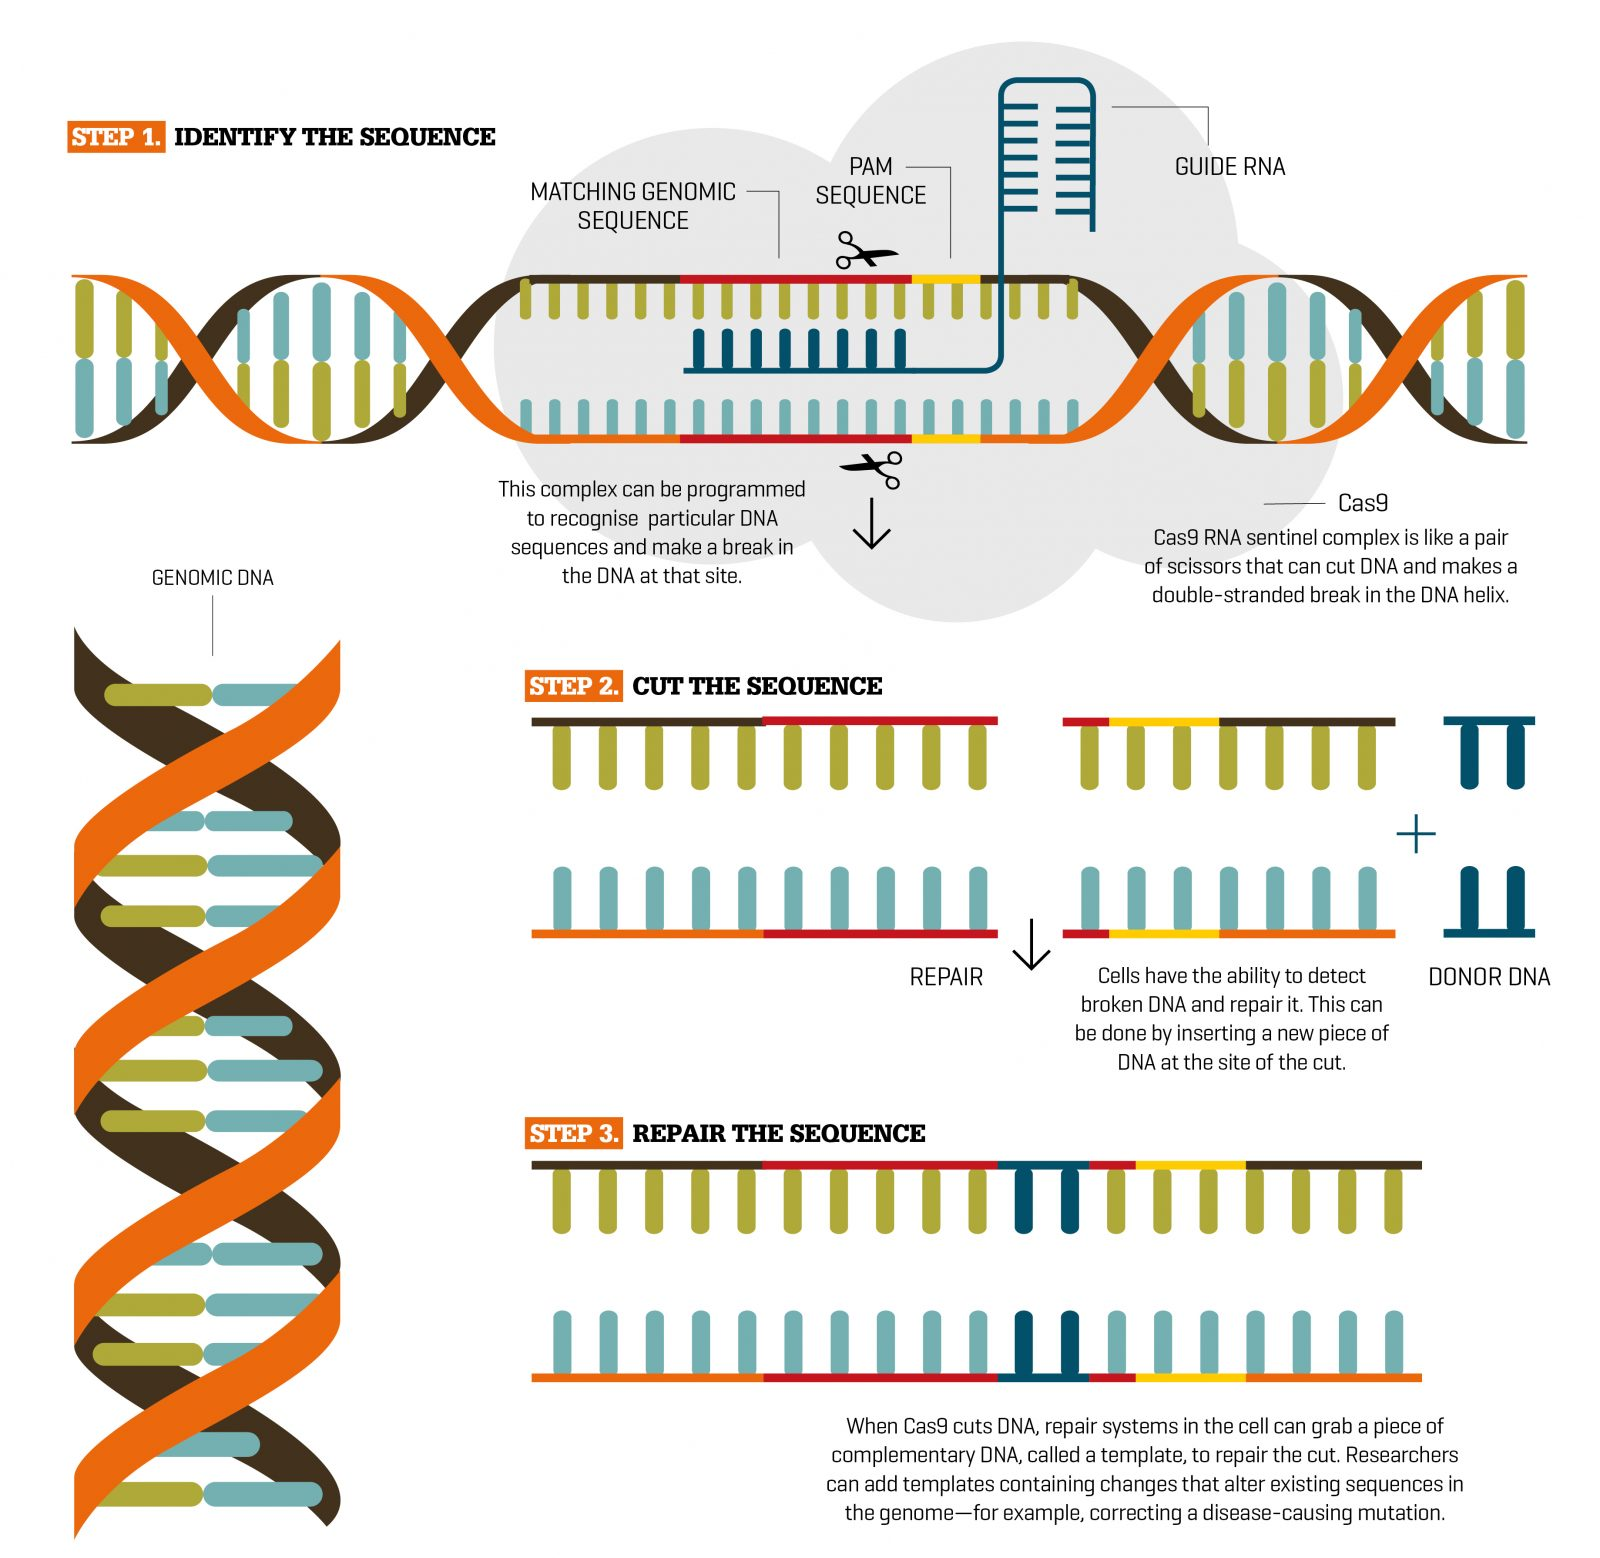 Imagine editing a spool of film. You need to find the right point in the footage, cut out a sequence of frames, and splice in new frames to make the film tell a whole new story. The only difference when using genomic DNA is that the editor must find the the right part of the sequence using a guide of matching RNA, cut the sequence using another RNA tool called Cas9, then as the cell begins to repair itself, offer it new DNA instead. And just like that, you're editing the stuff of life.